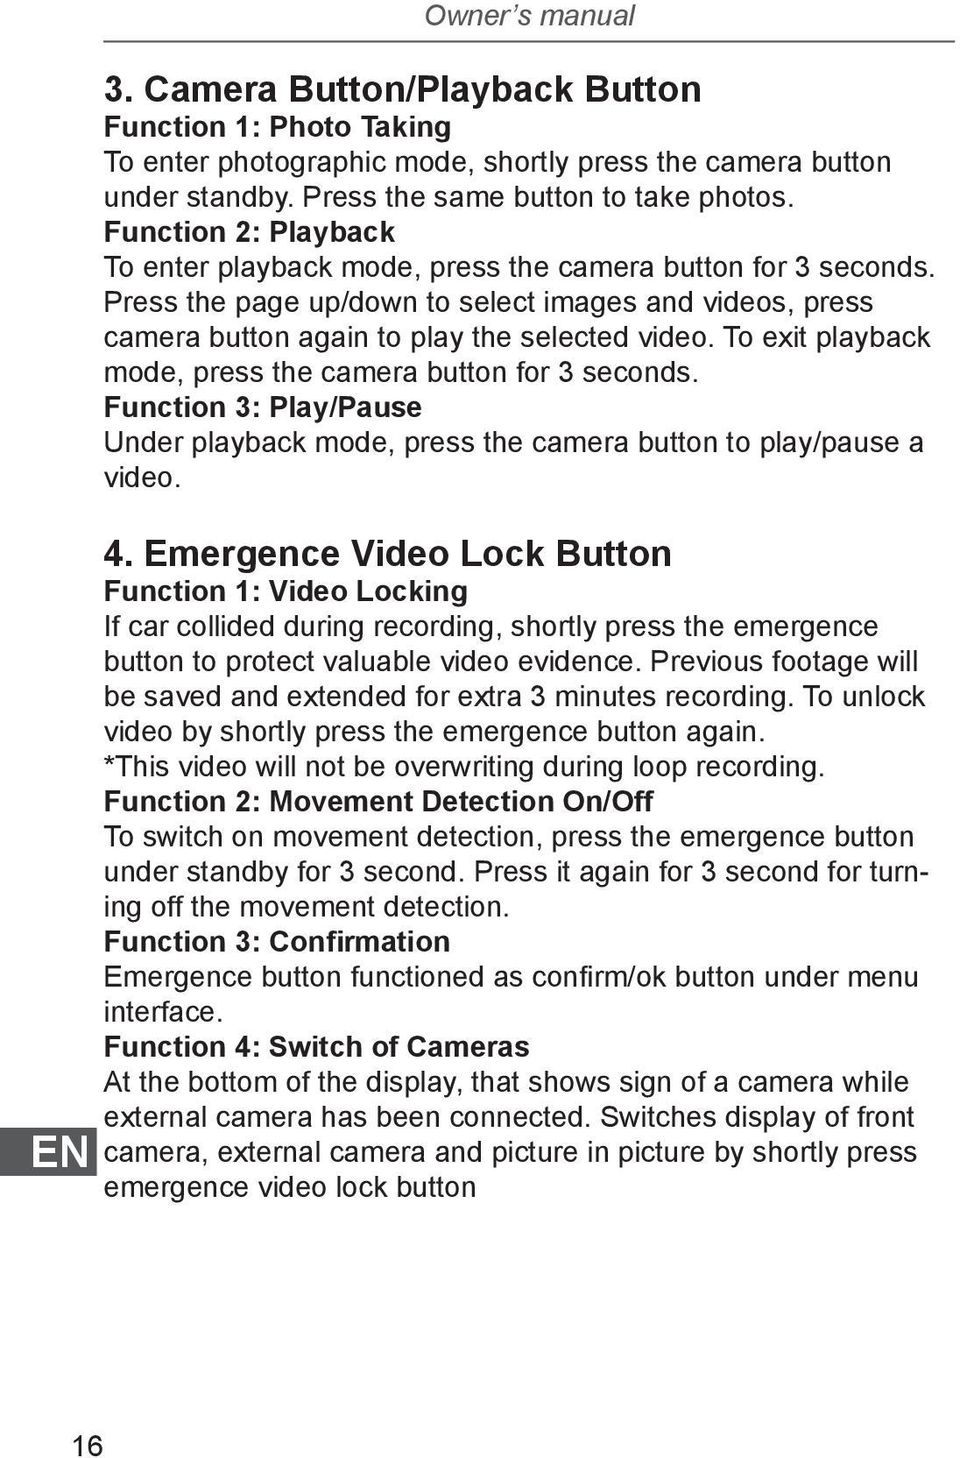 To exit playback mode, press the camera button for 3 seconds. Function 3: Play/Pause Under playback mode, press the camera button to play/pause a video. 4.